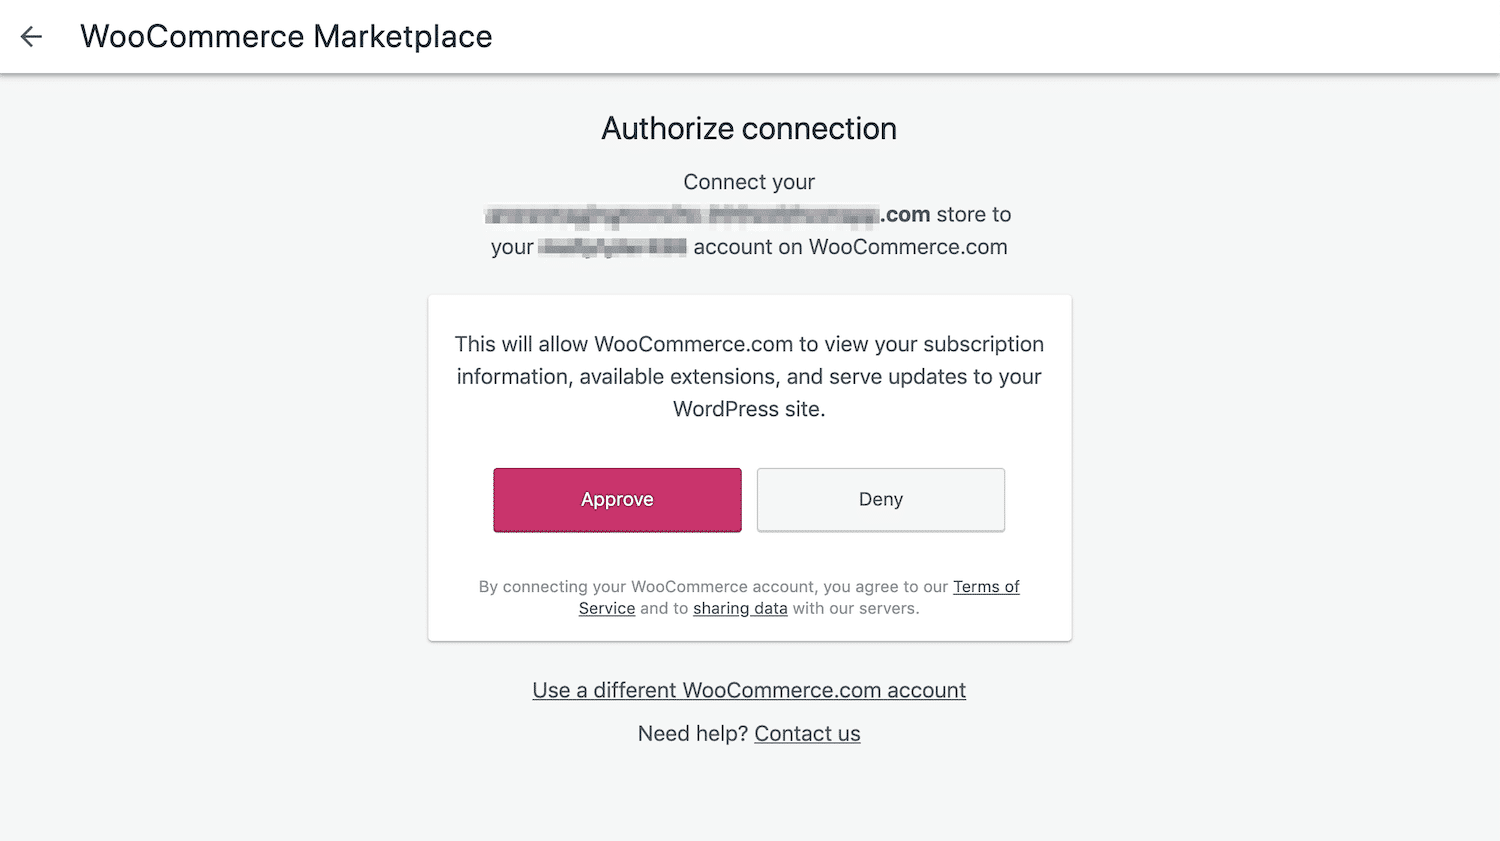 authorize woocommerce connection